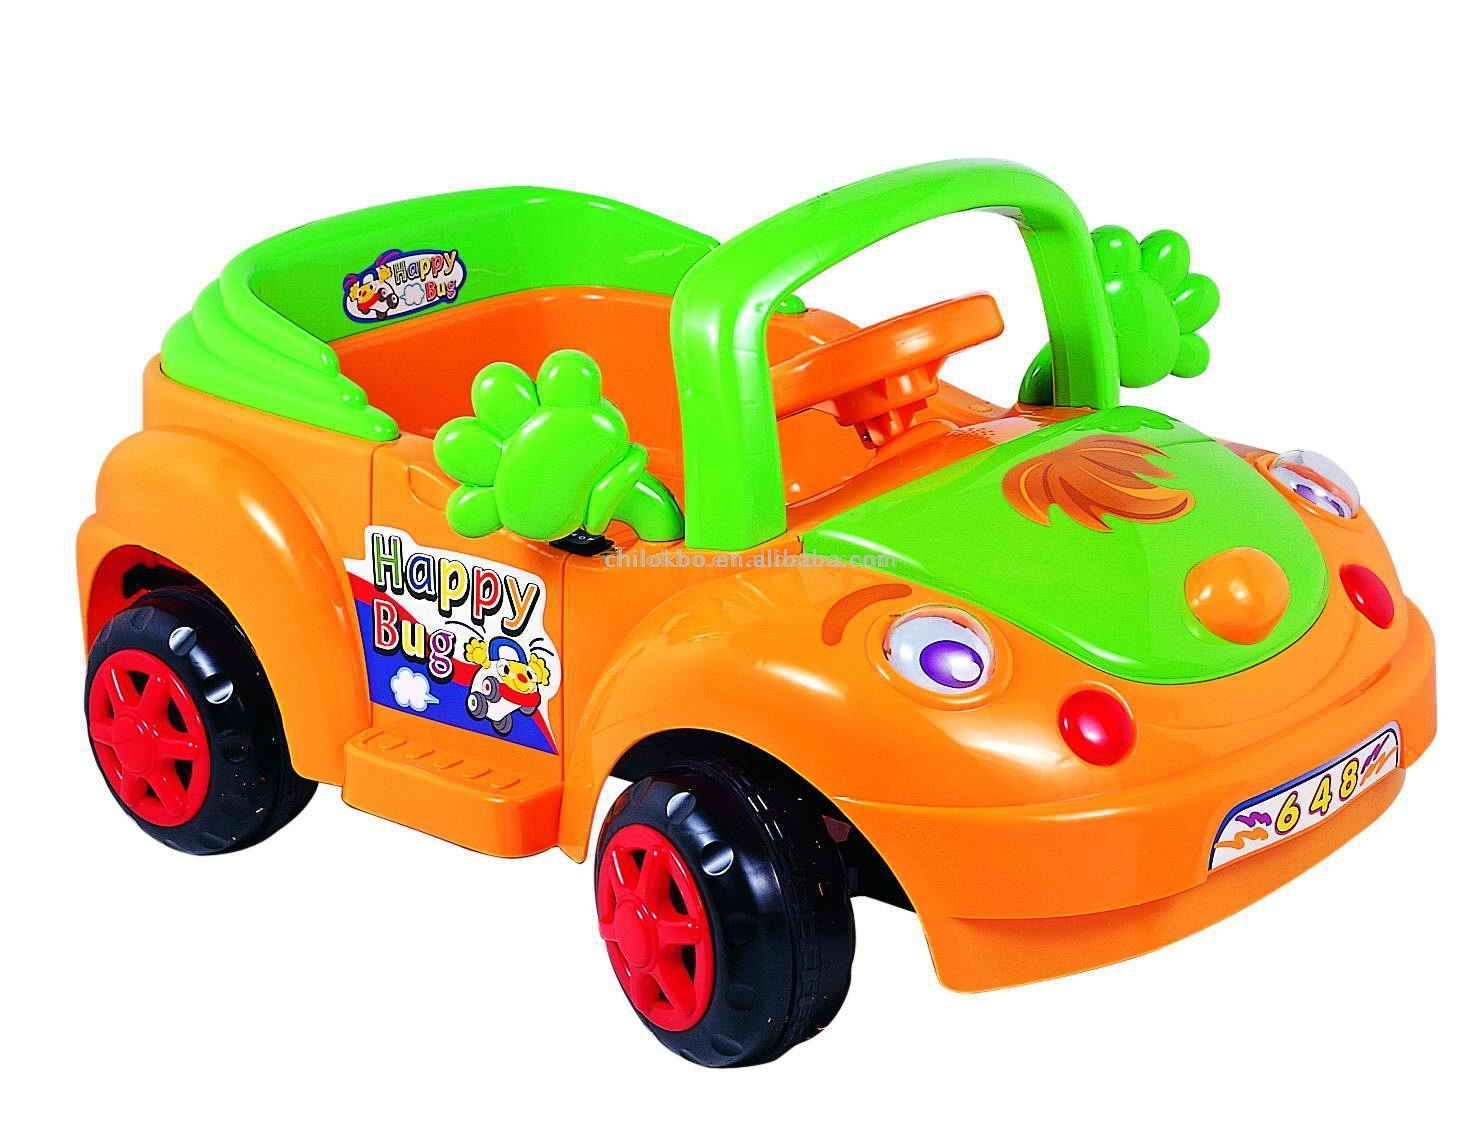 Toddler Toys Cars : Babbies wallpapers free download cute kids